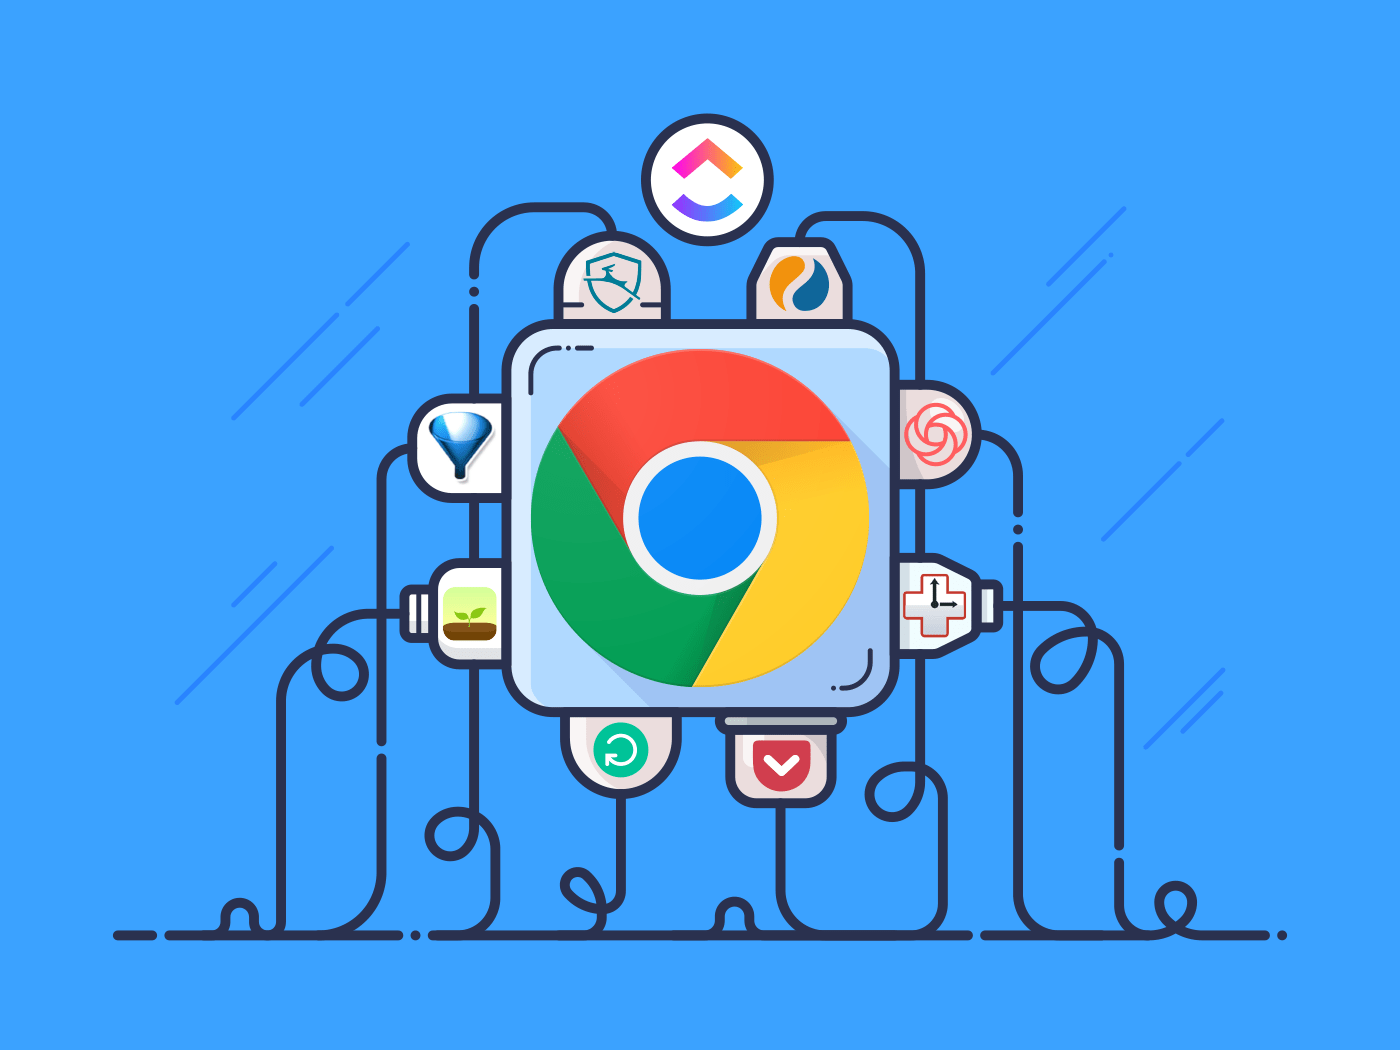 21 Best Chrome Extensions for Productivity in 2021.